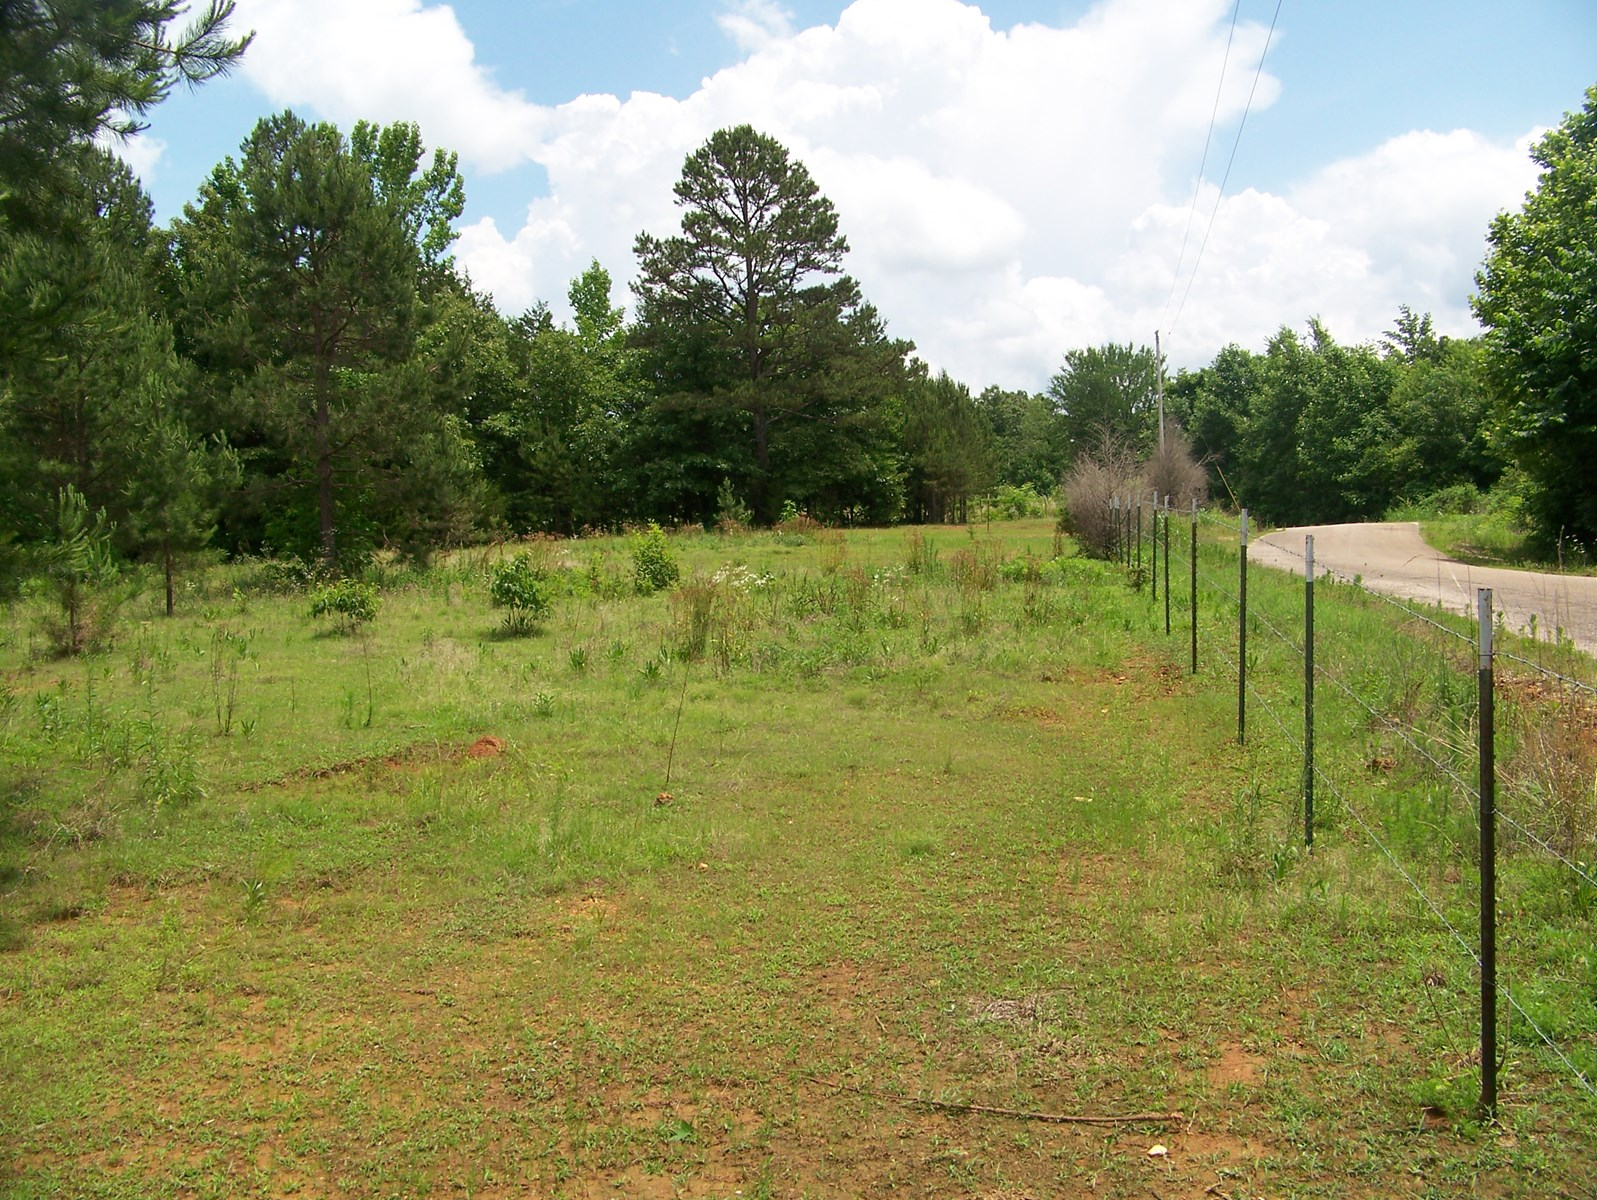 5AC OF TN LAND FOR SALE READY FOR COUNTRY HOME OR MINI-FARM